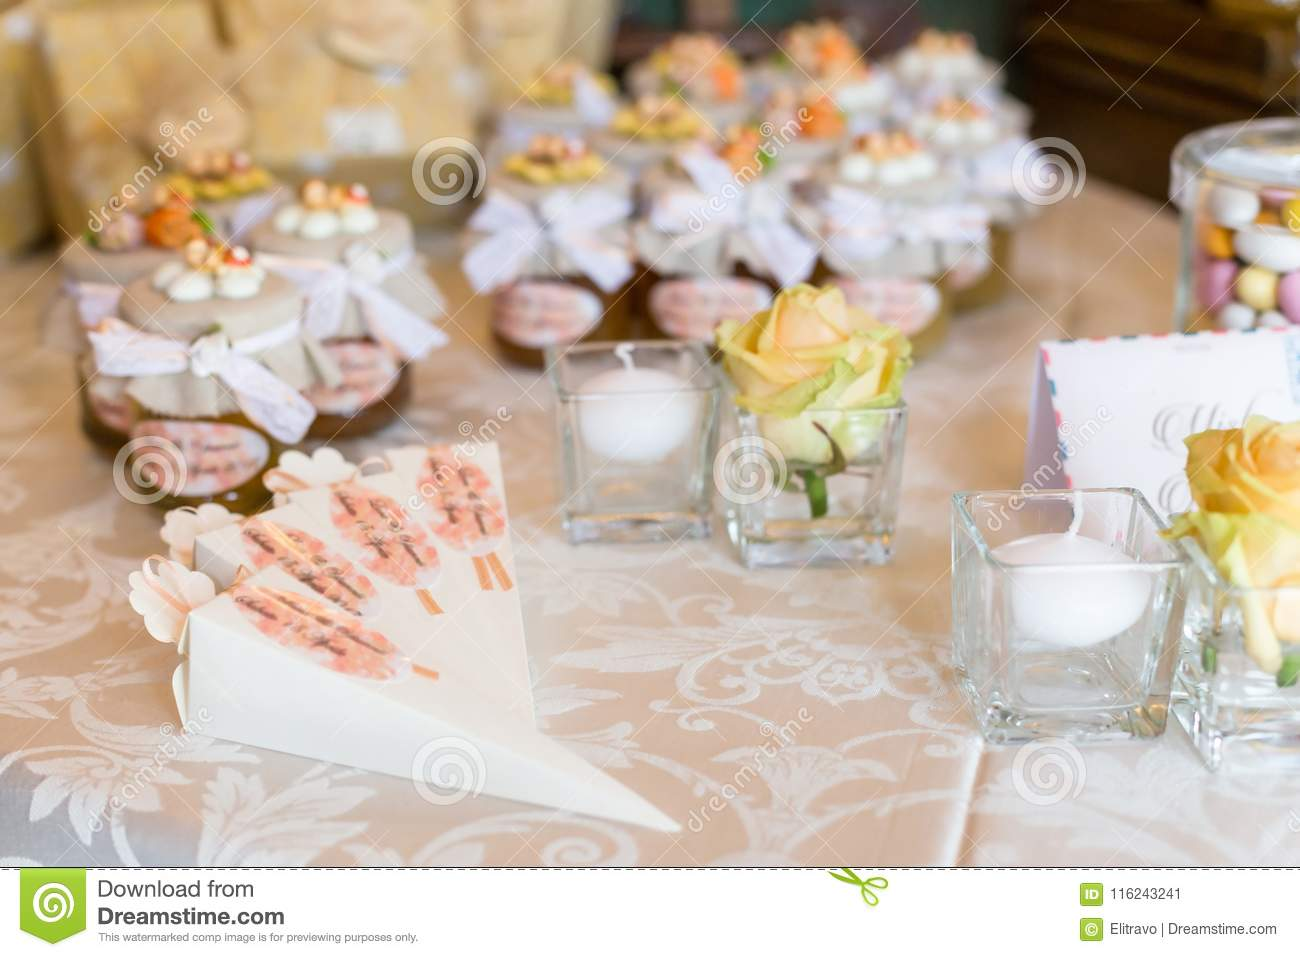 Wedding Guest Favors.Wedding Favors For Wedding Guest Stock Image Image Of Bridal